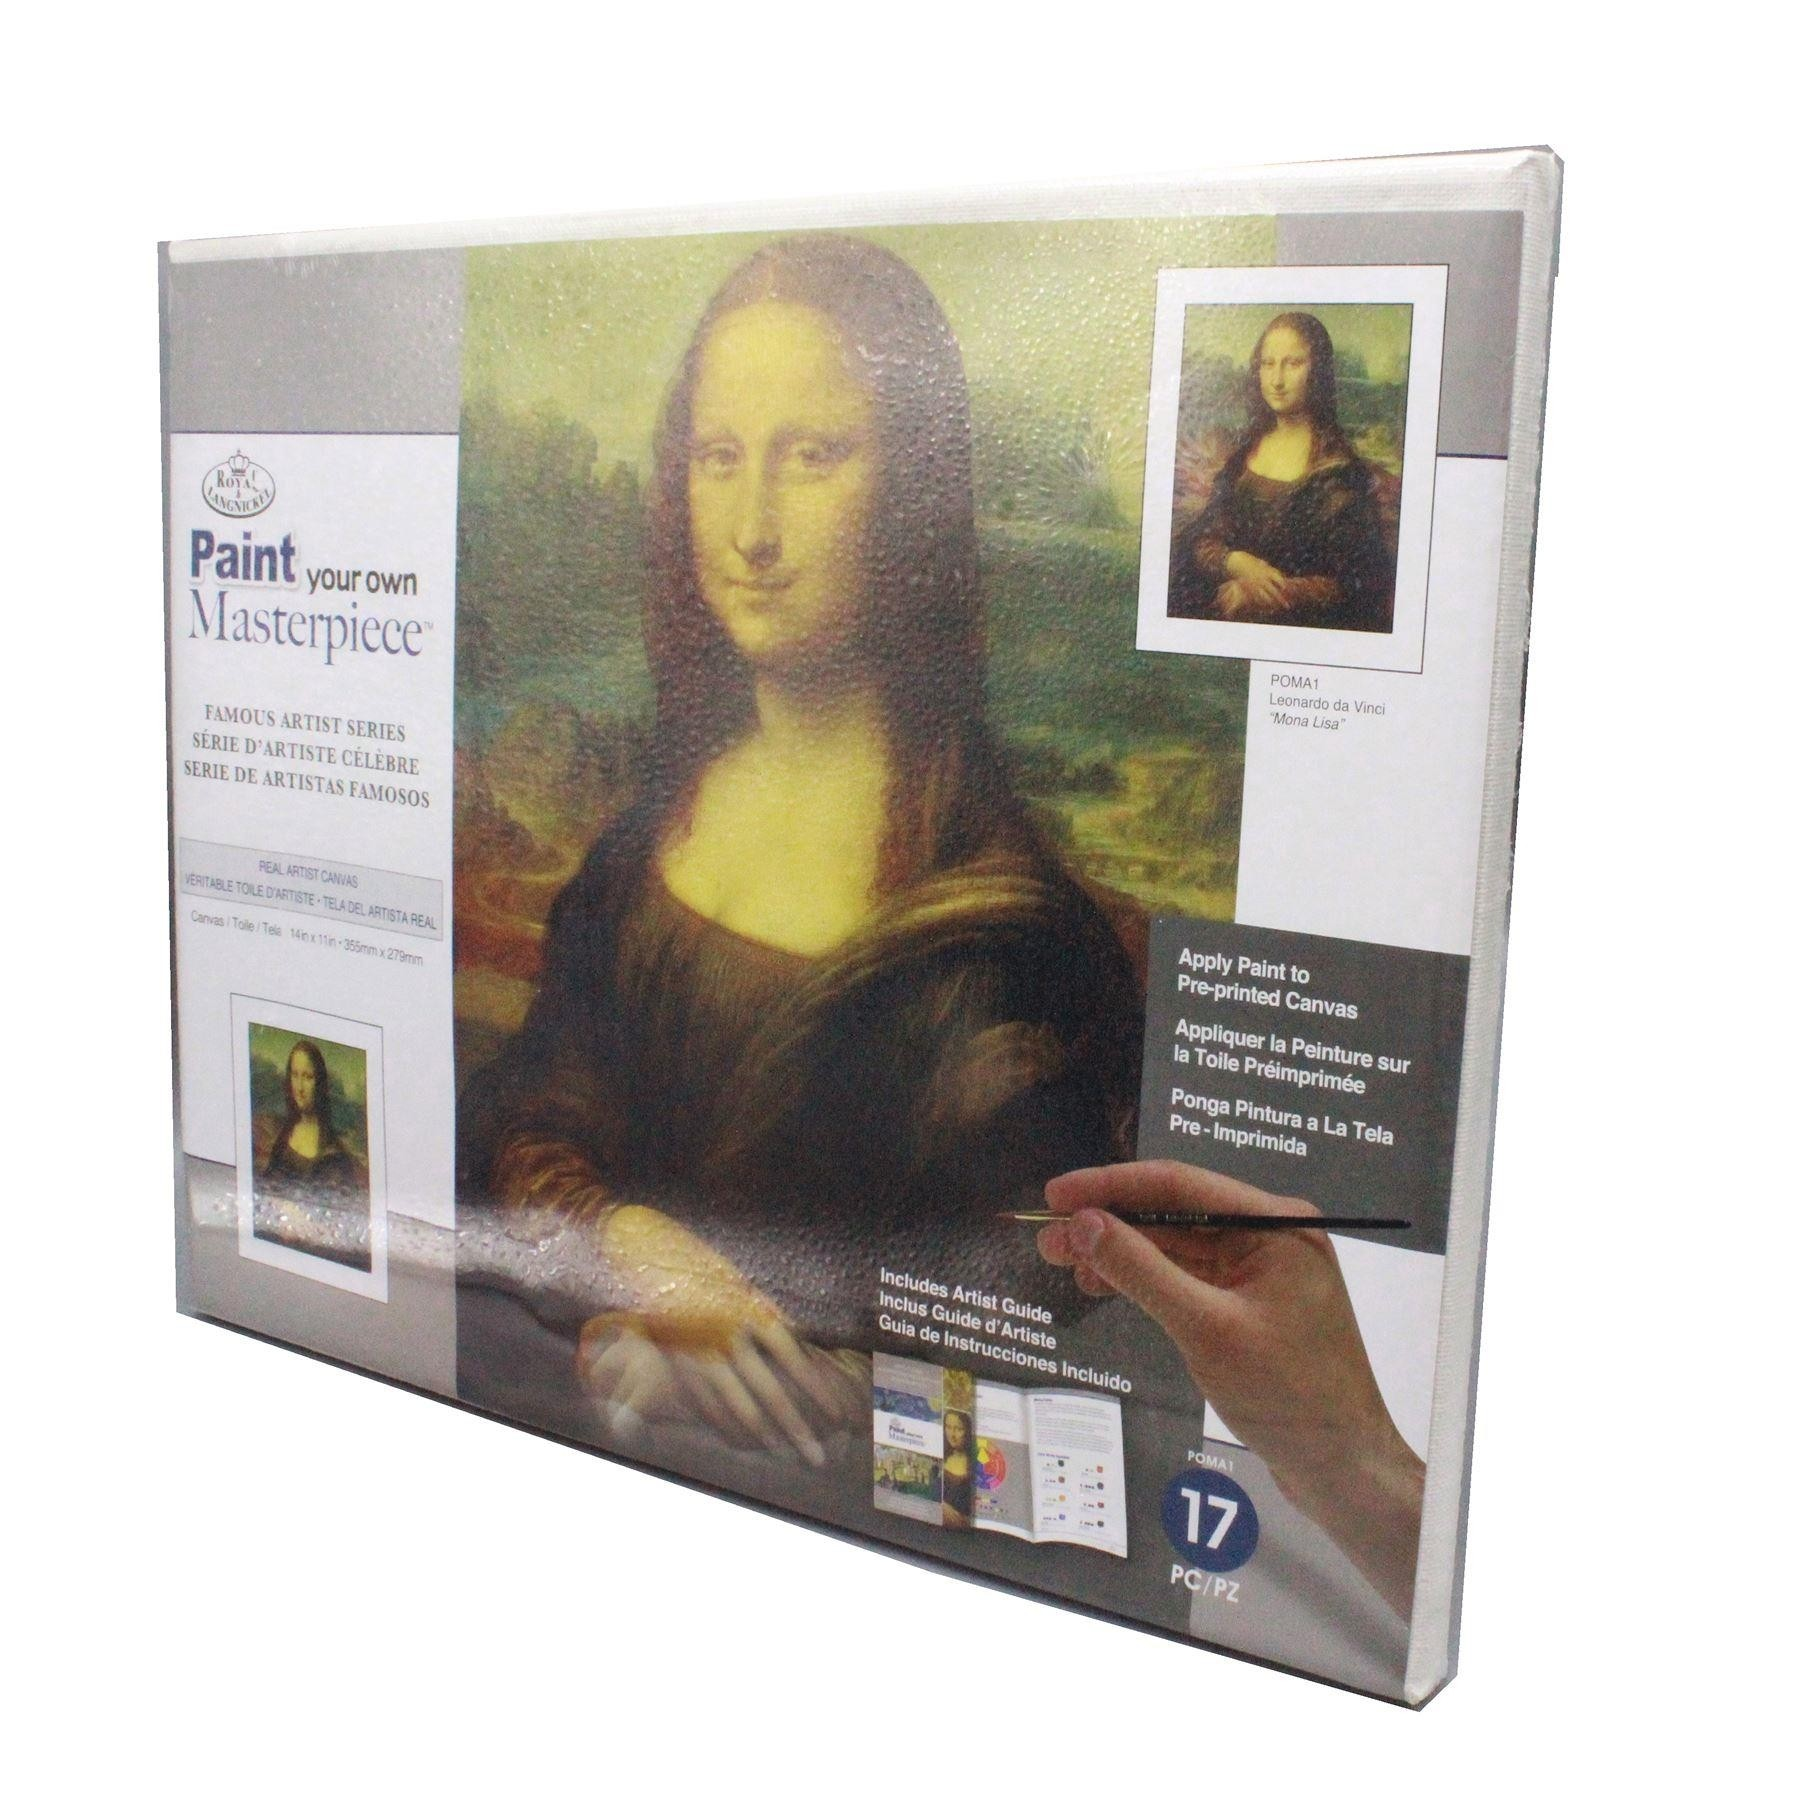 Paint your own Masterpiece Leonardo Da Vinci Mona Lisa Royal & Langnickel